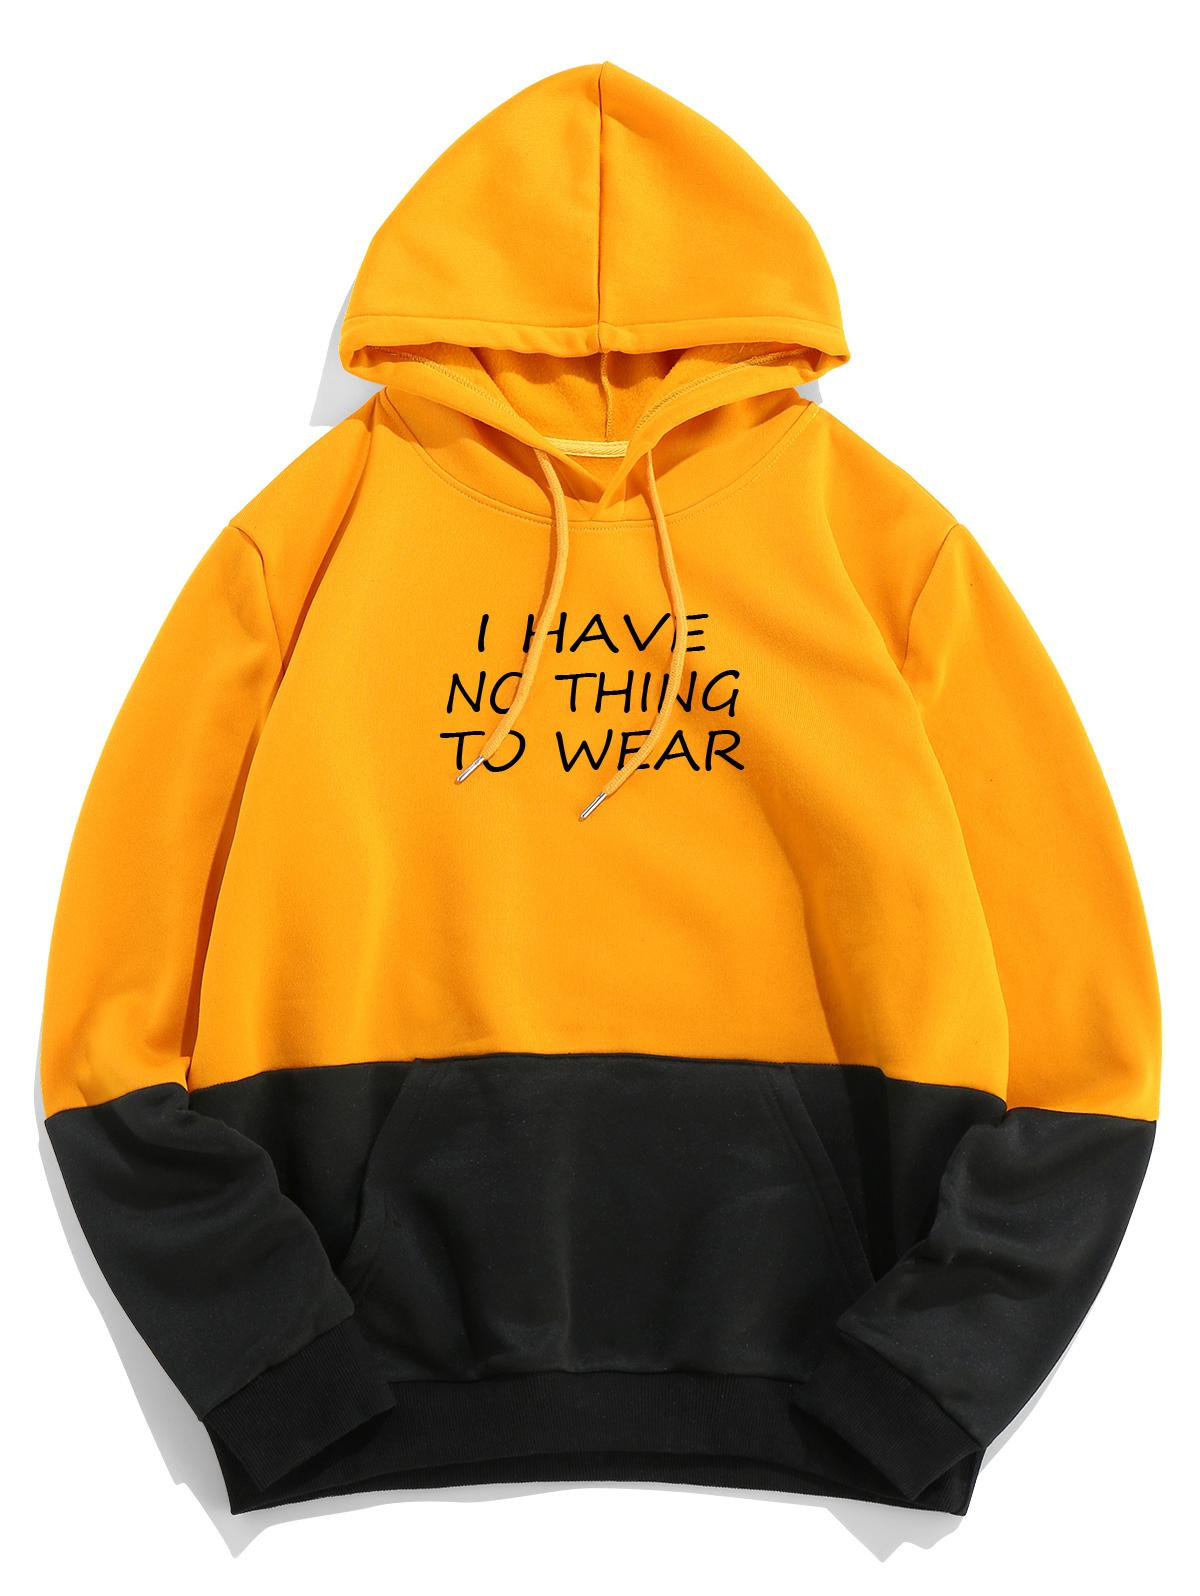 ZAFUL Colorblock Letter Printed Pocket Hoodie фото